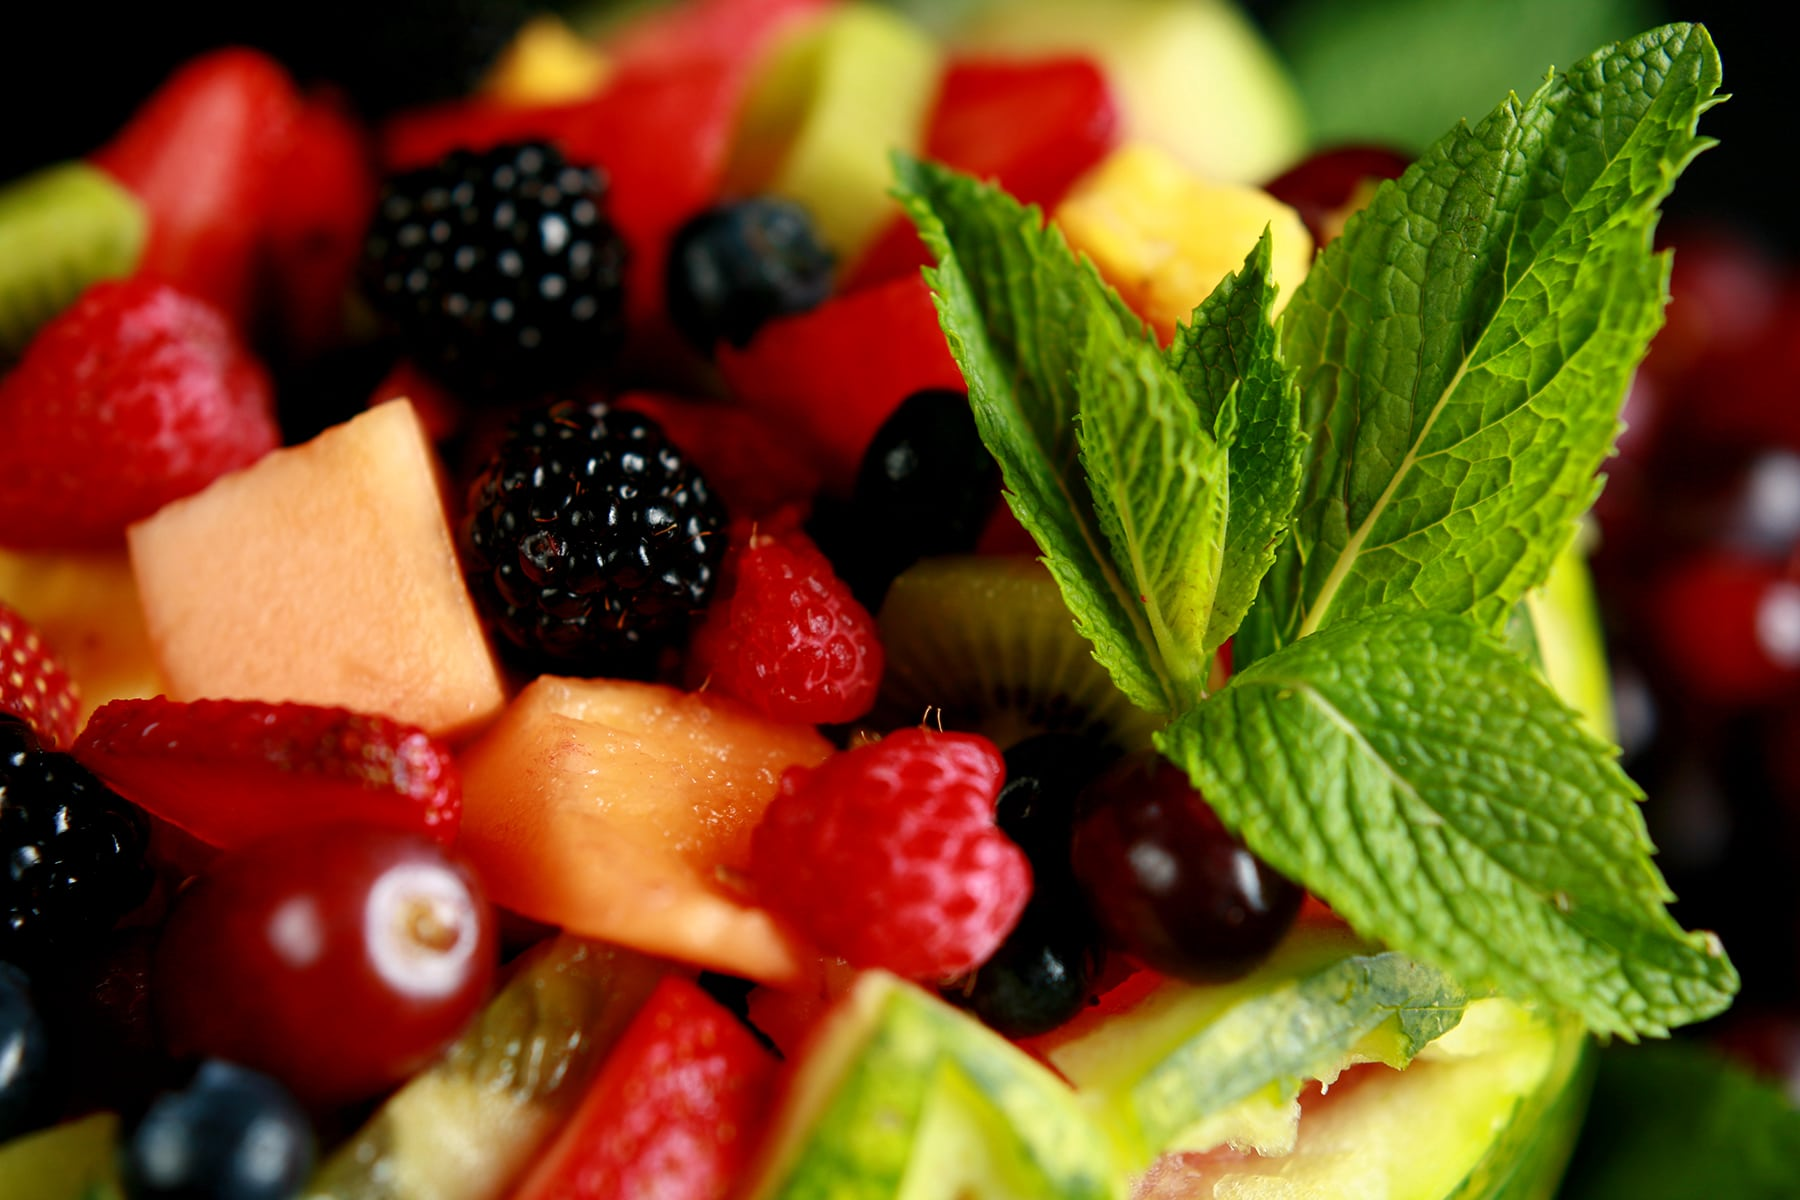 A close up view of a fruit salad, garnished witha  sprig of mint.